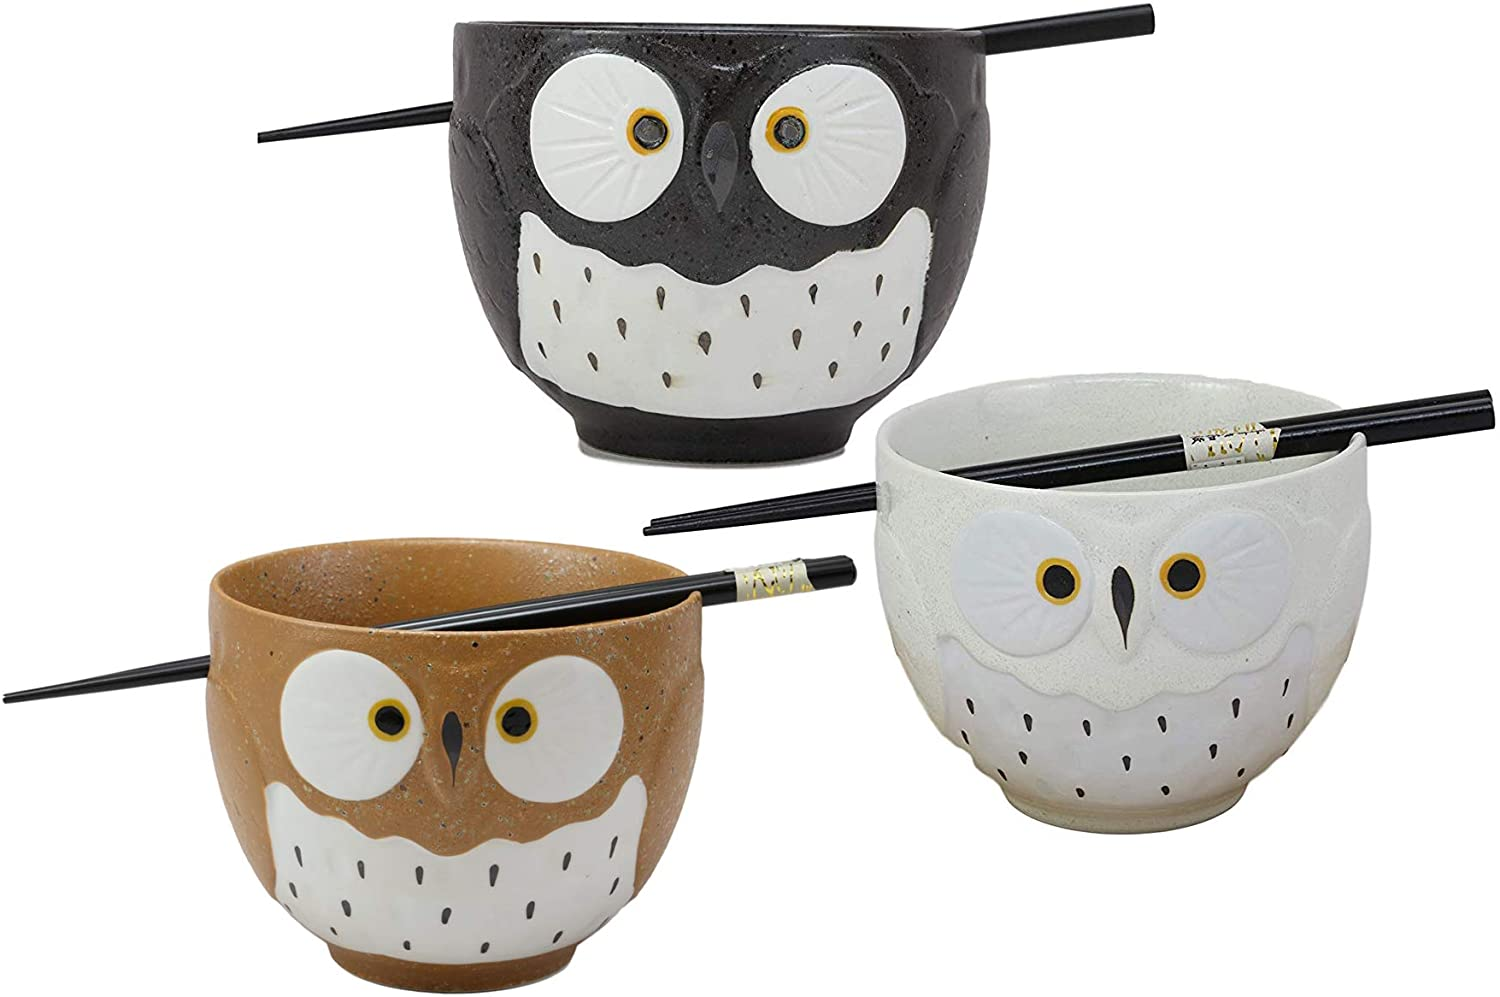 Ebros Whimsical Ceramic Brown White And Black Owl With Spotted Chest Ramen Udong Noodles Bowl and Chopsticks Set of 3 Asian Dining Salad Soup Rice Meal Cereal Owls Collection of Bowls Decor